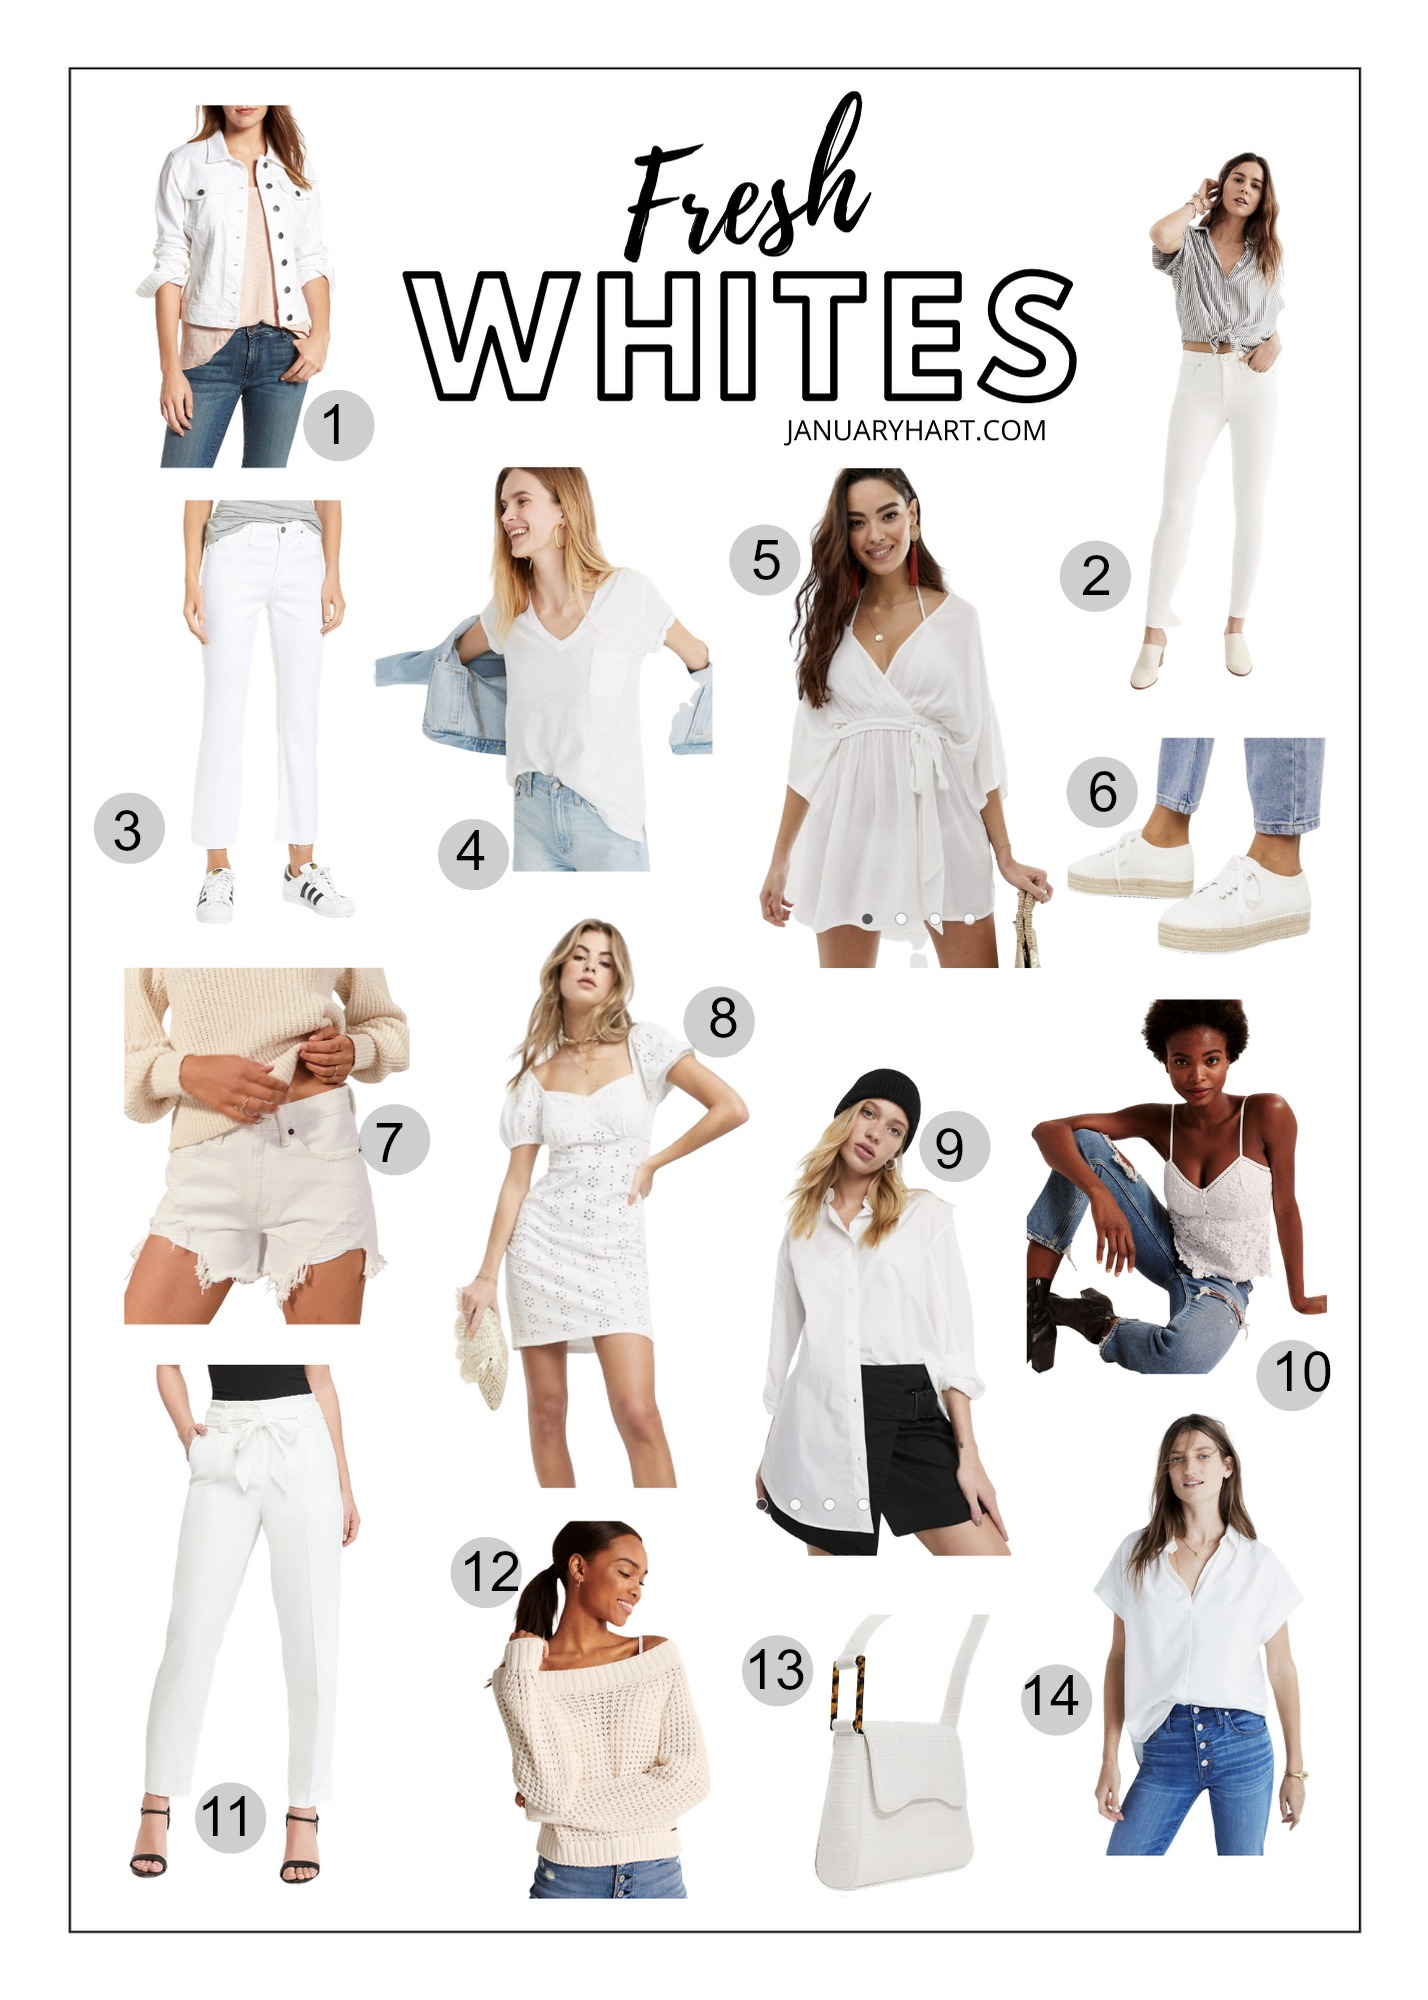 White basics for Spring 2020